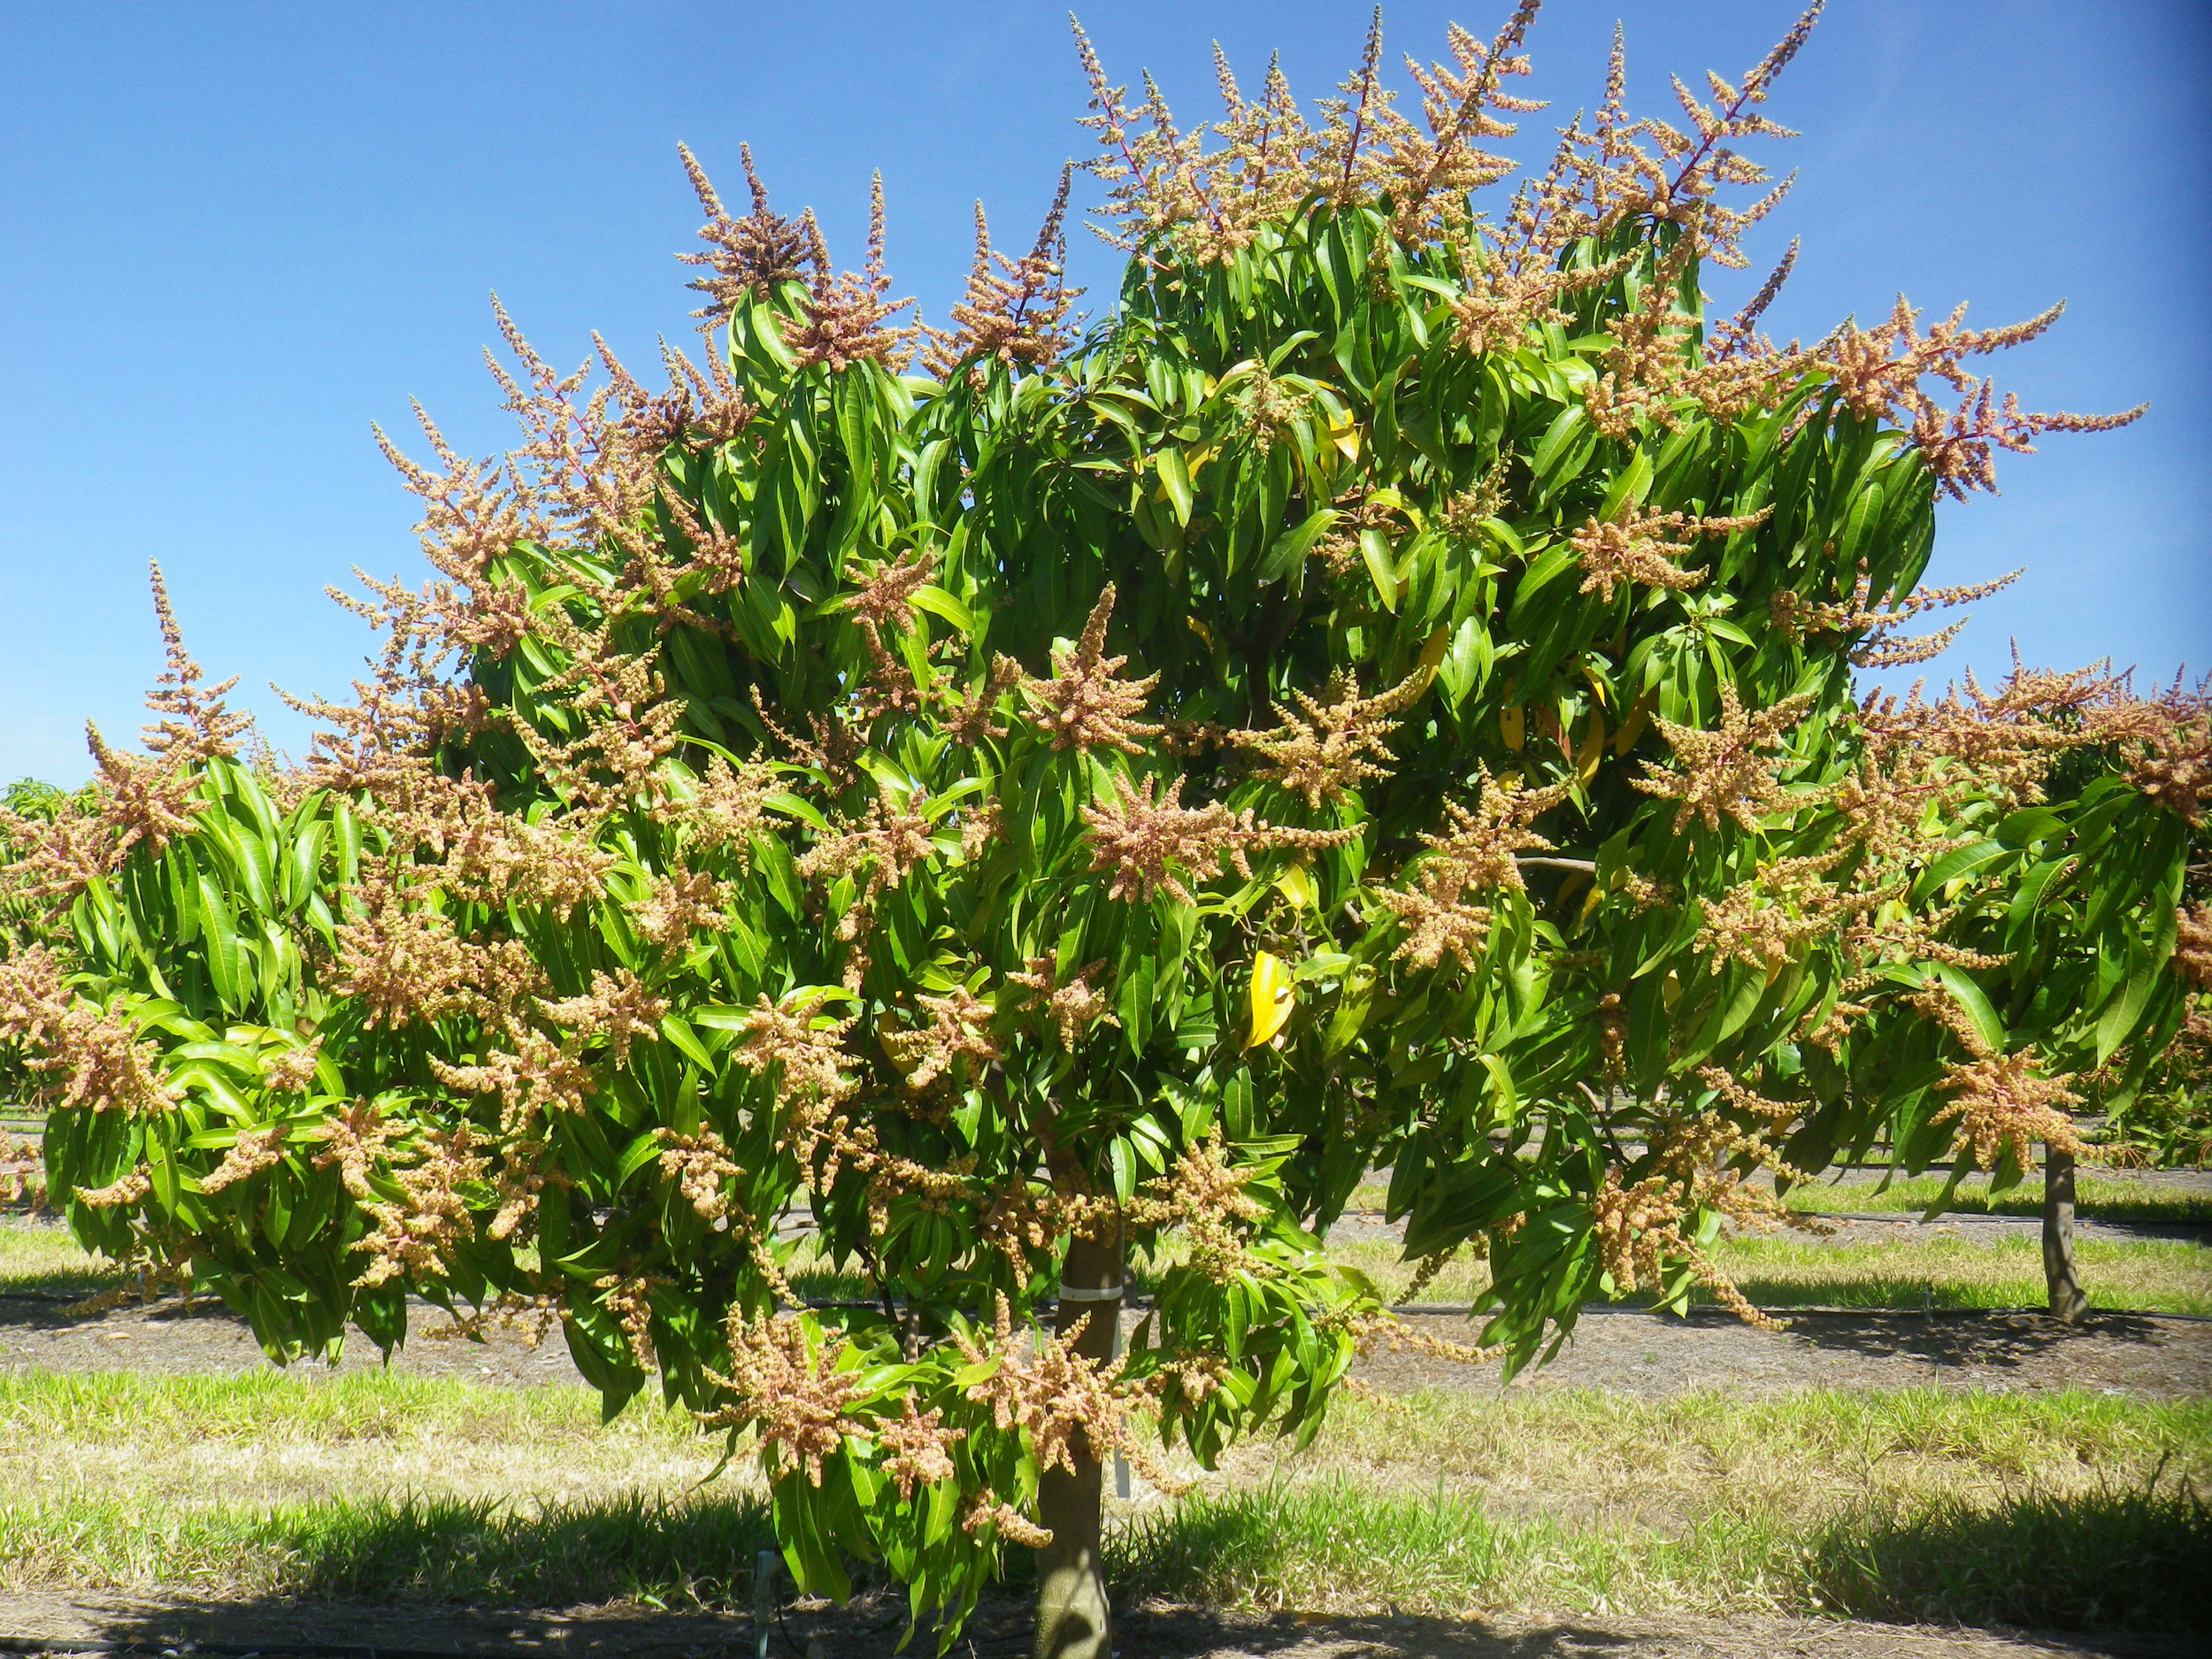 Calypso trees used in the crop load study with 100% flowering (no flowers removed  .